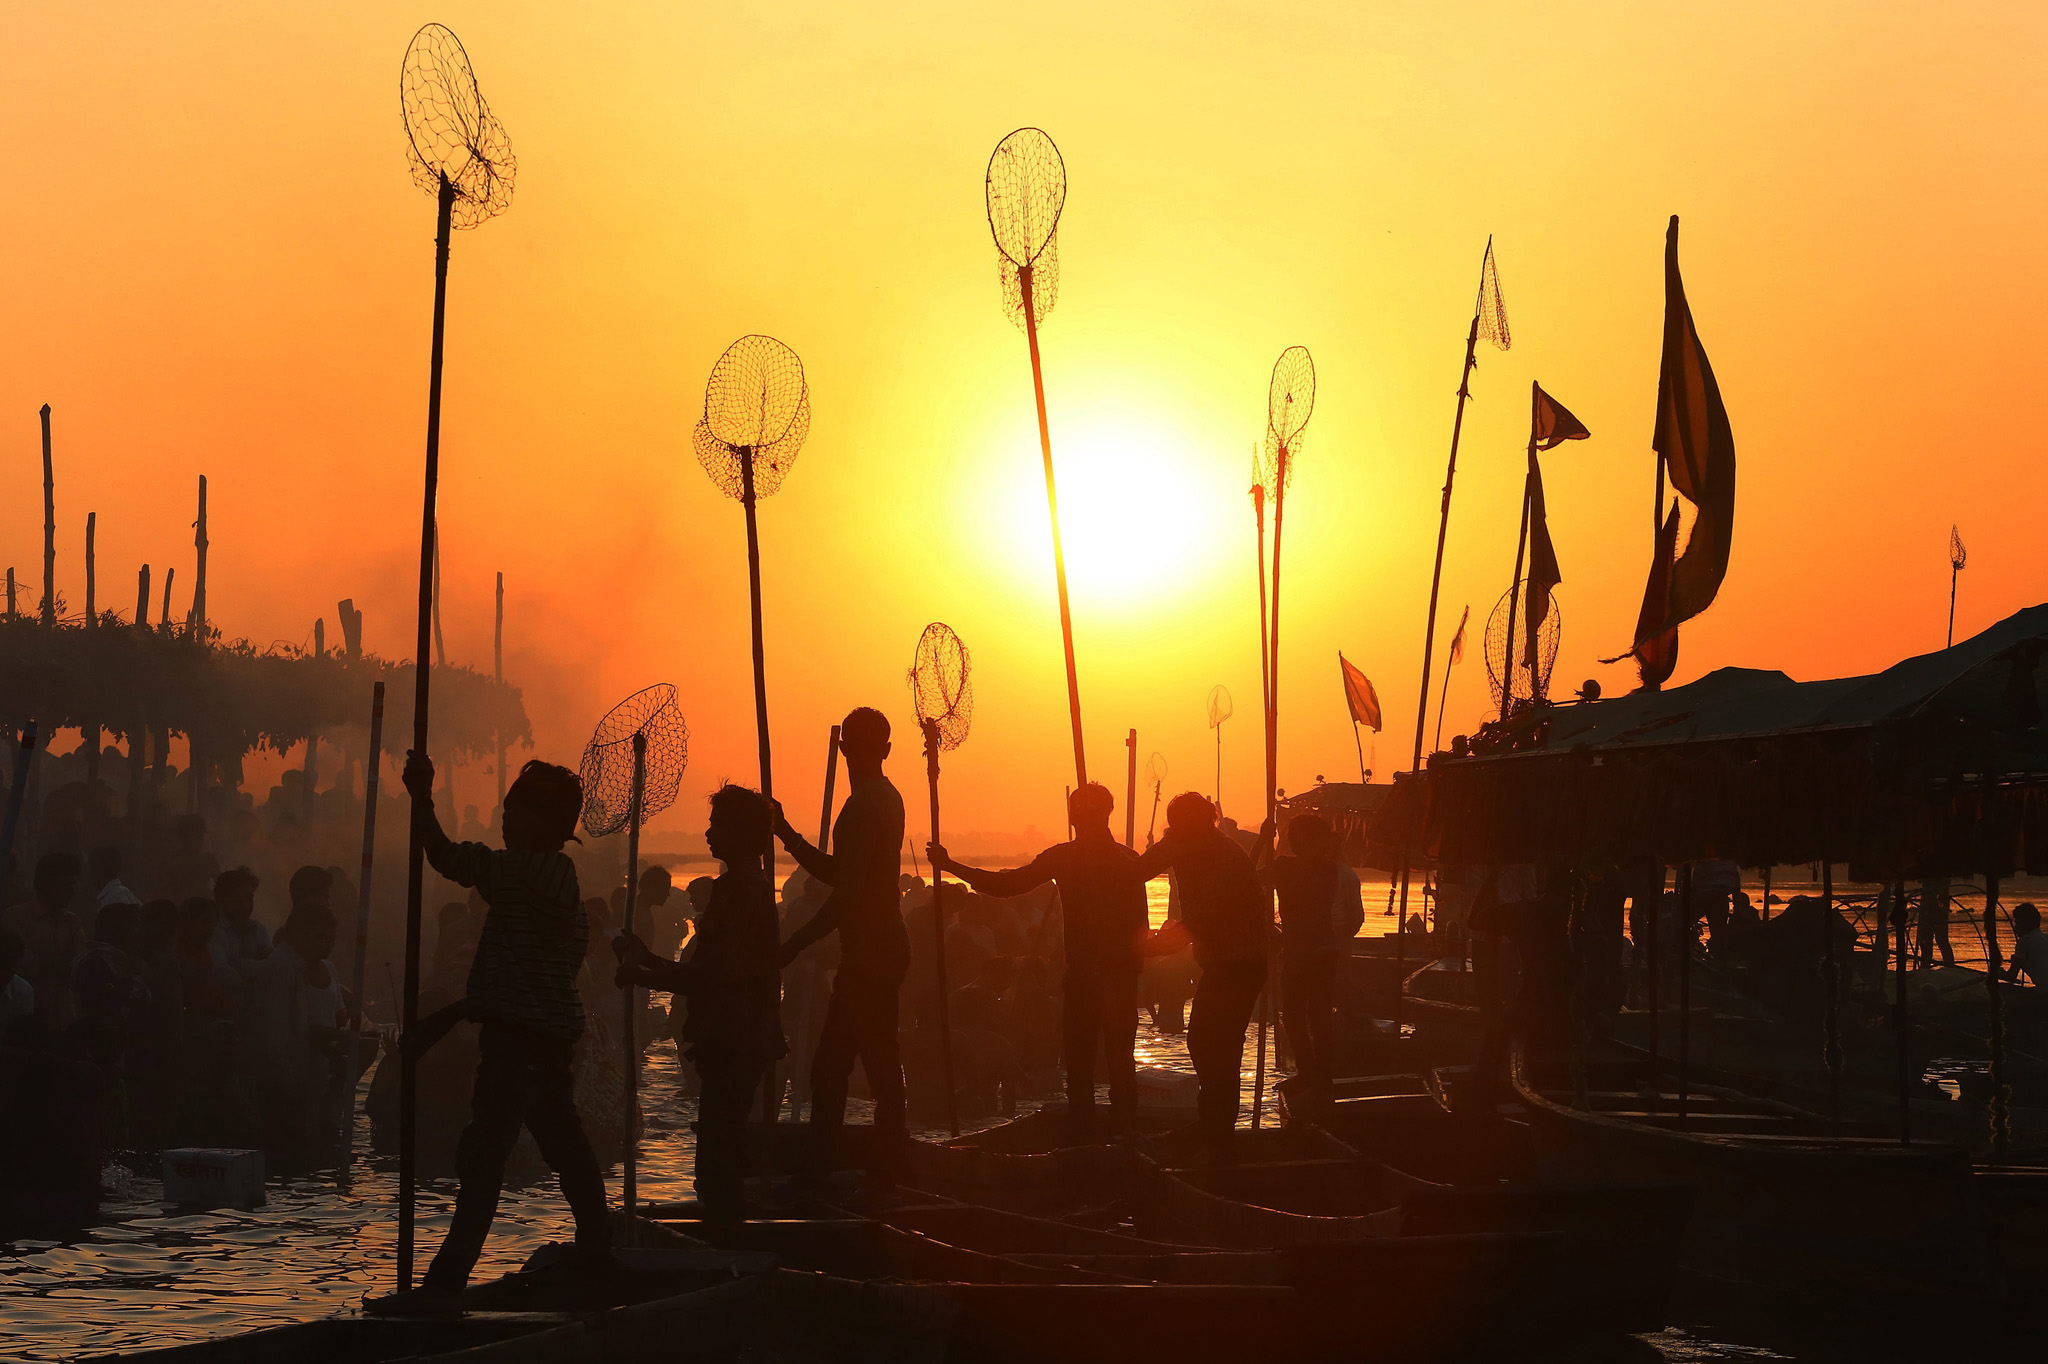 Indian fisherman prepare for the morning catch...epa04671103 Indian fishermen are silhuetted by the rising sun as they prepare for an early  morning catch at the banks of Narmada river in Nemawar district Dewas, 200 kilometers from Bhopal, Madhya Pradesh, India 20 March 2015.  EPA/SAJNEEV GUPTA